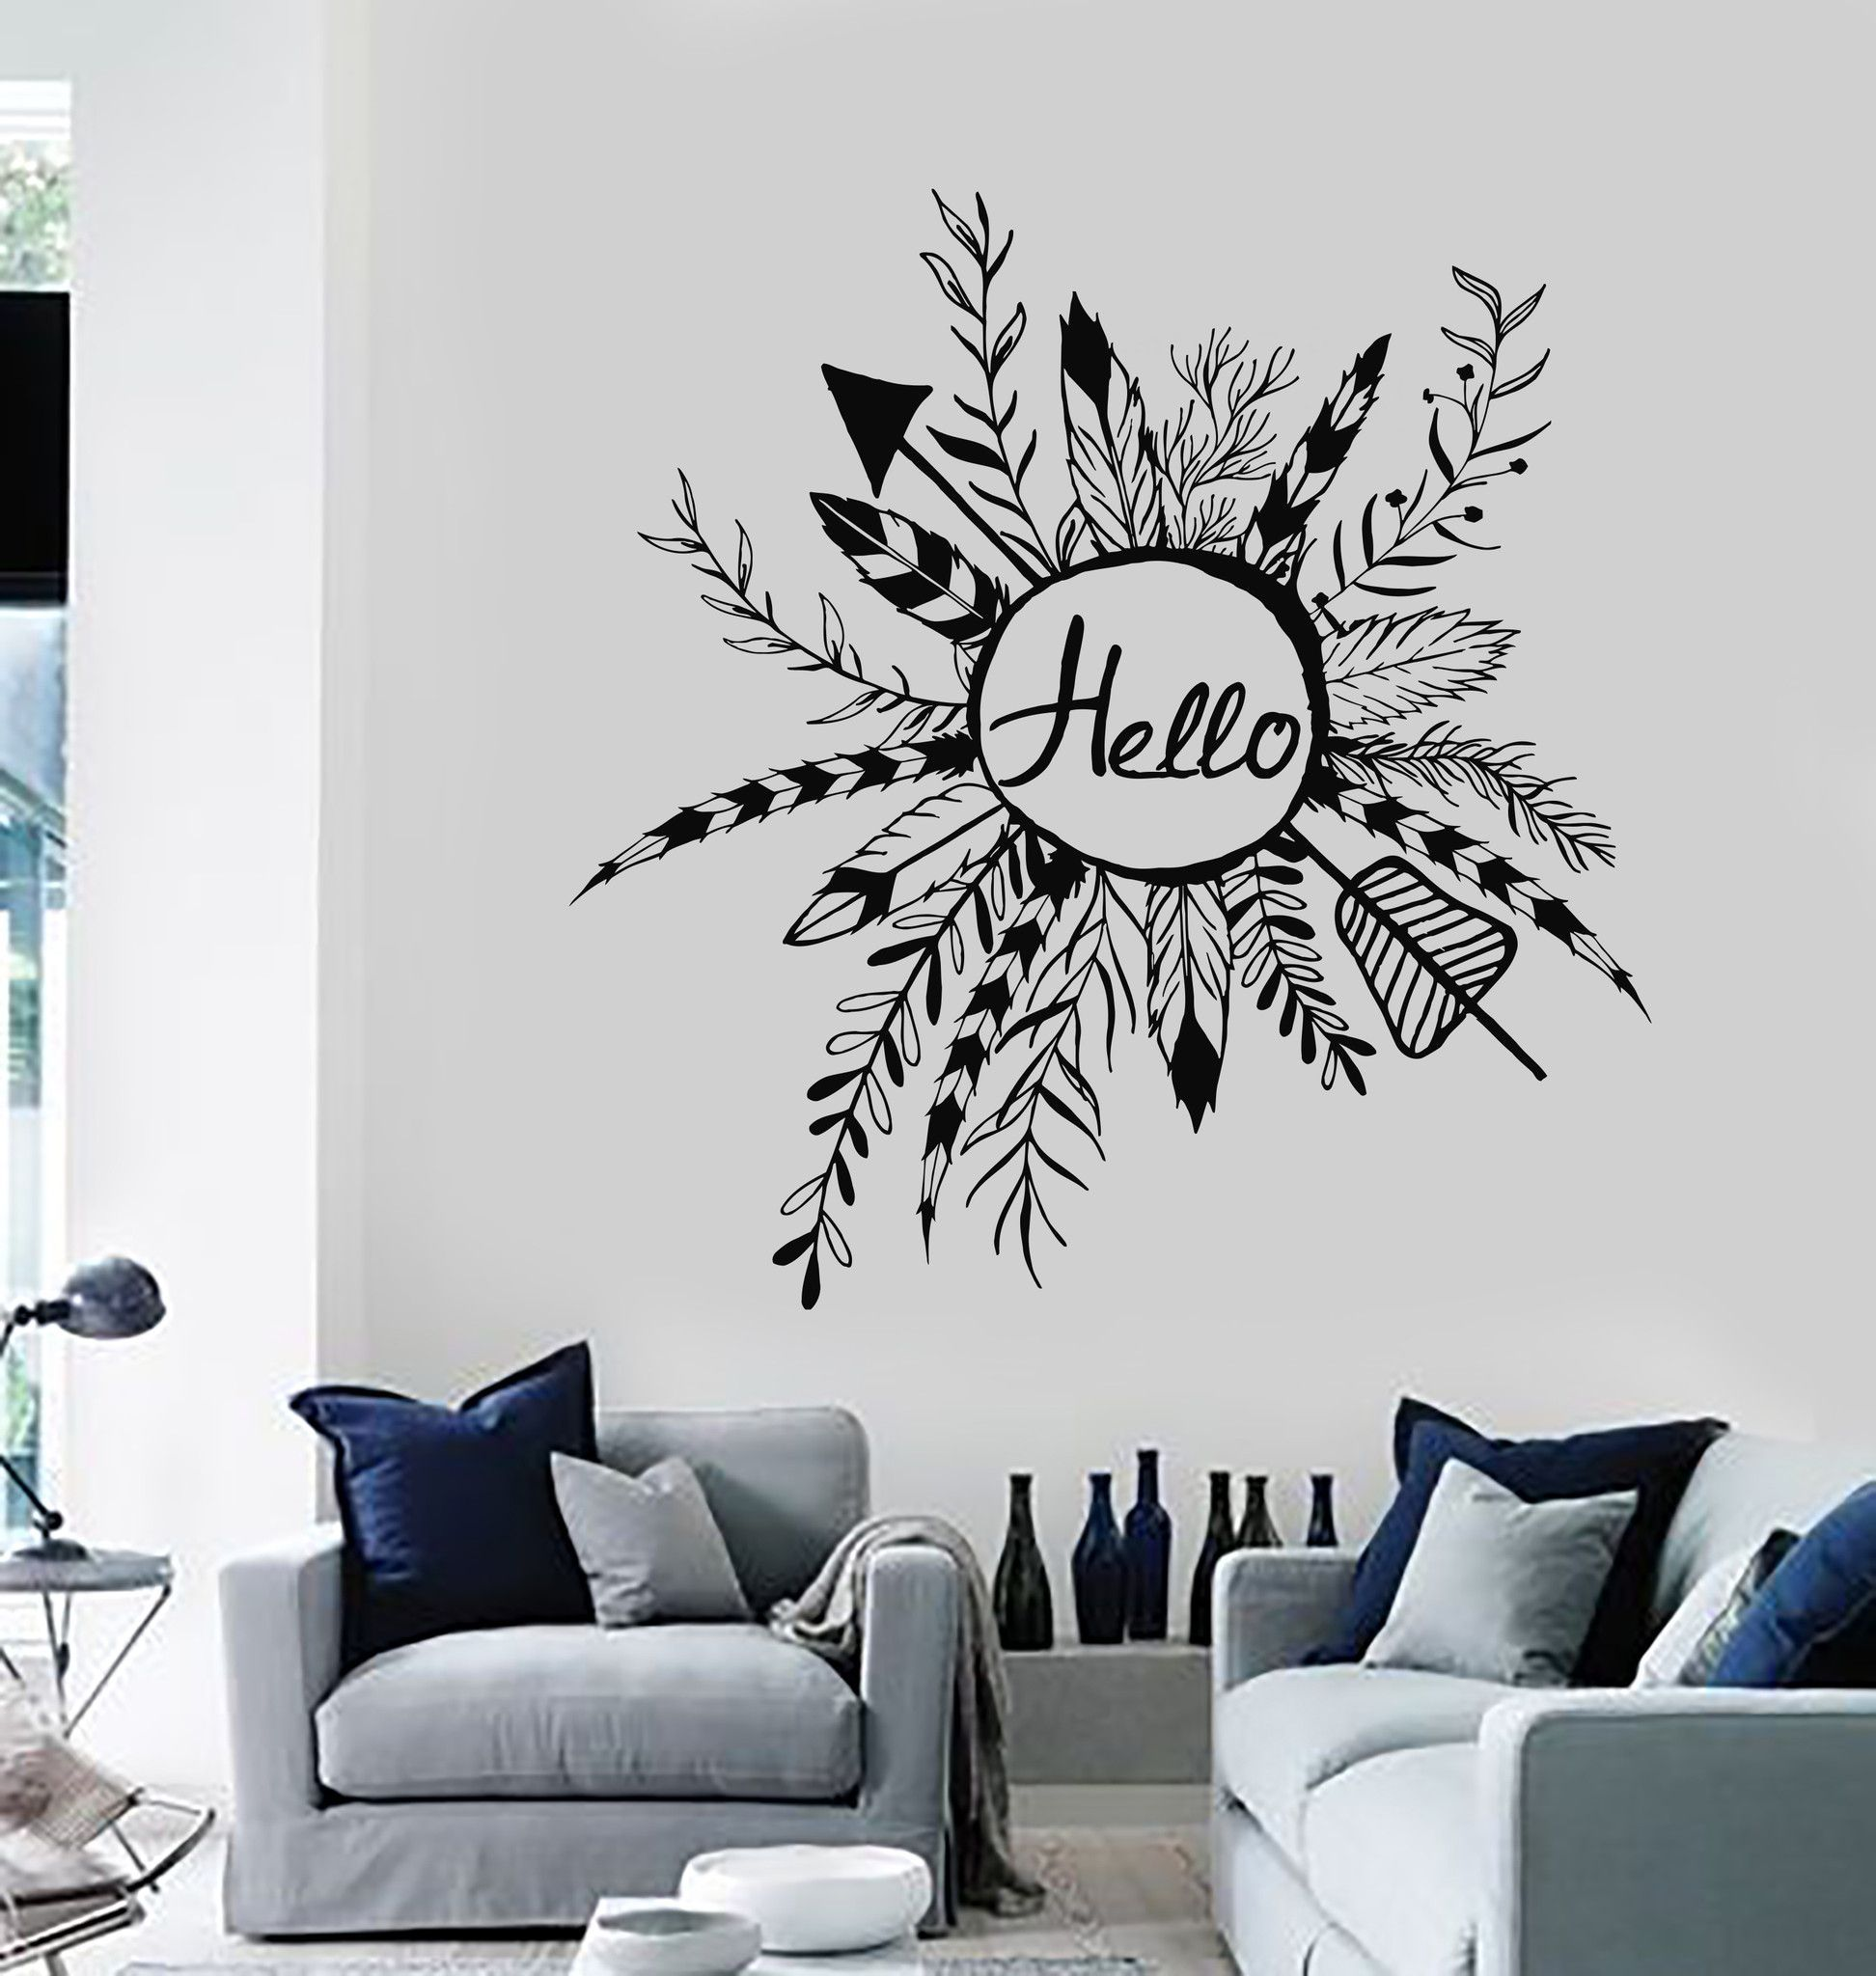 Deer head wall decal option a modern wall decals by dana decals - Vinyl Wall Decal Rustic Style Wreath Hello Ethnic Arrows Feathers Stickers Ig4047